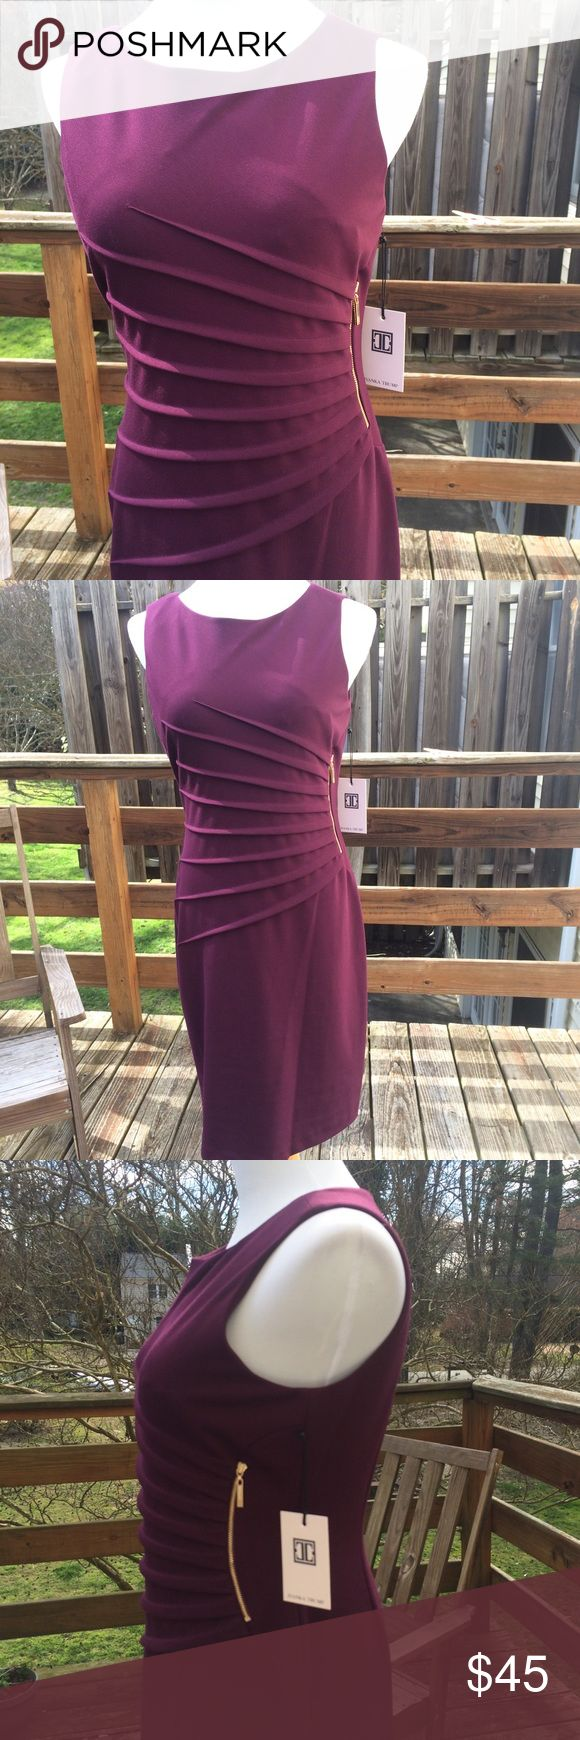 NWT Ivanka Trump Sheath Dress Very nice sleeveless Sheath dress from Ivanka Trump. No matter how you feel about politics, this is a pretty spring dress :) Nice shade of purple with rouched torso for a very flattering look. Gold zipper detailing on one side. Material is a little stretchy. Dress is midi-length Ivanka Trump Dresses Midi